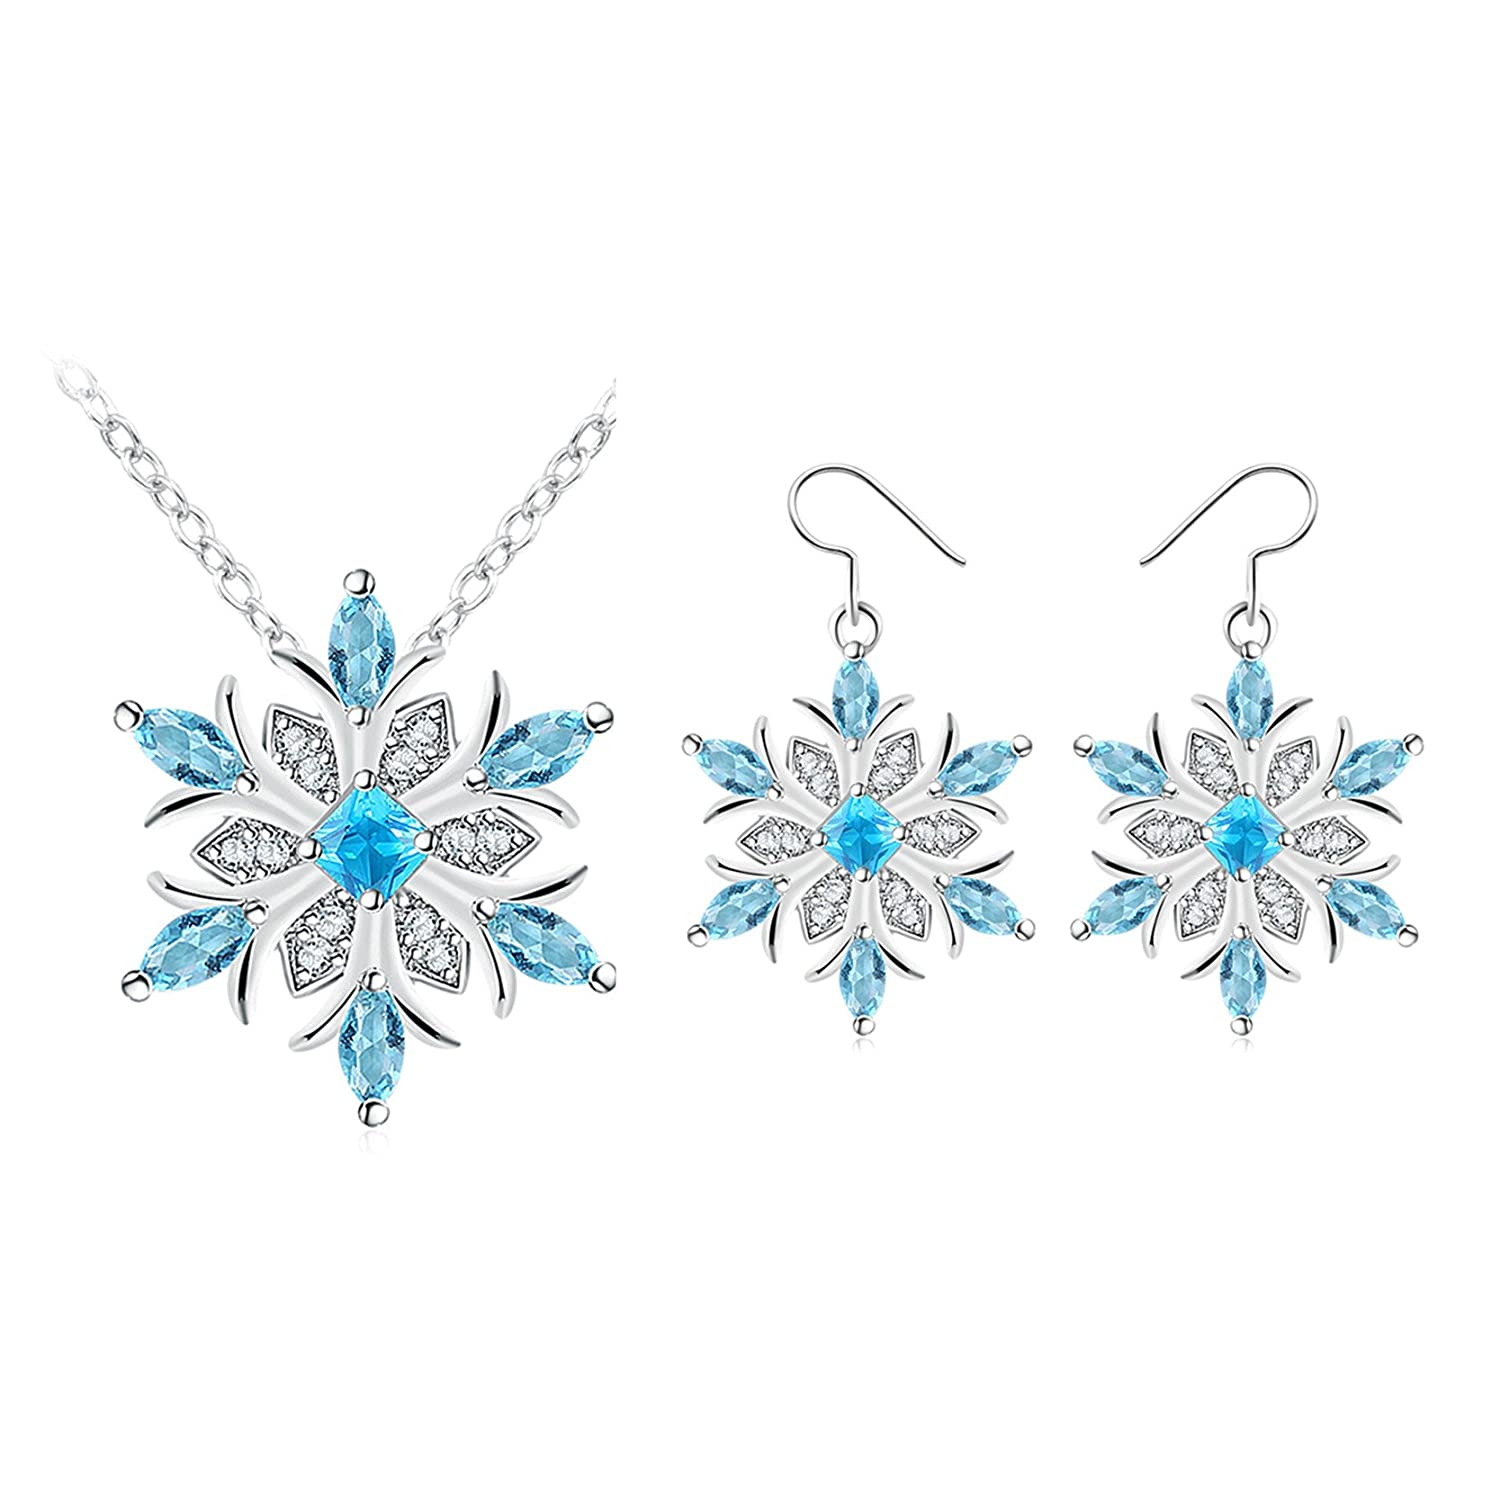 Jiayiqi Women Jewelry Set Crystal Inlay Silver Plated Earrings Necklace Set 14K50PM47D0KW301CRMMA1JX